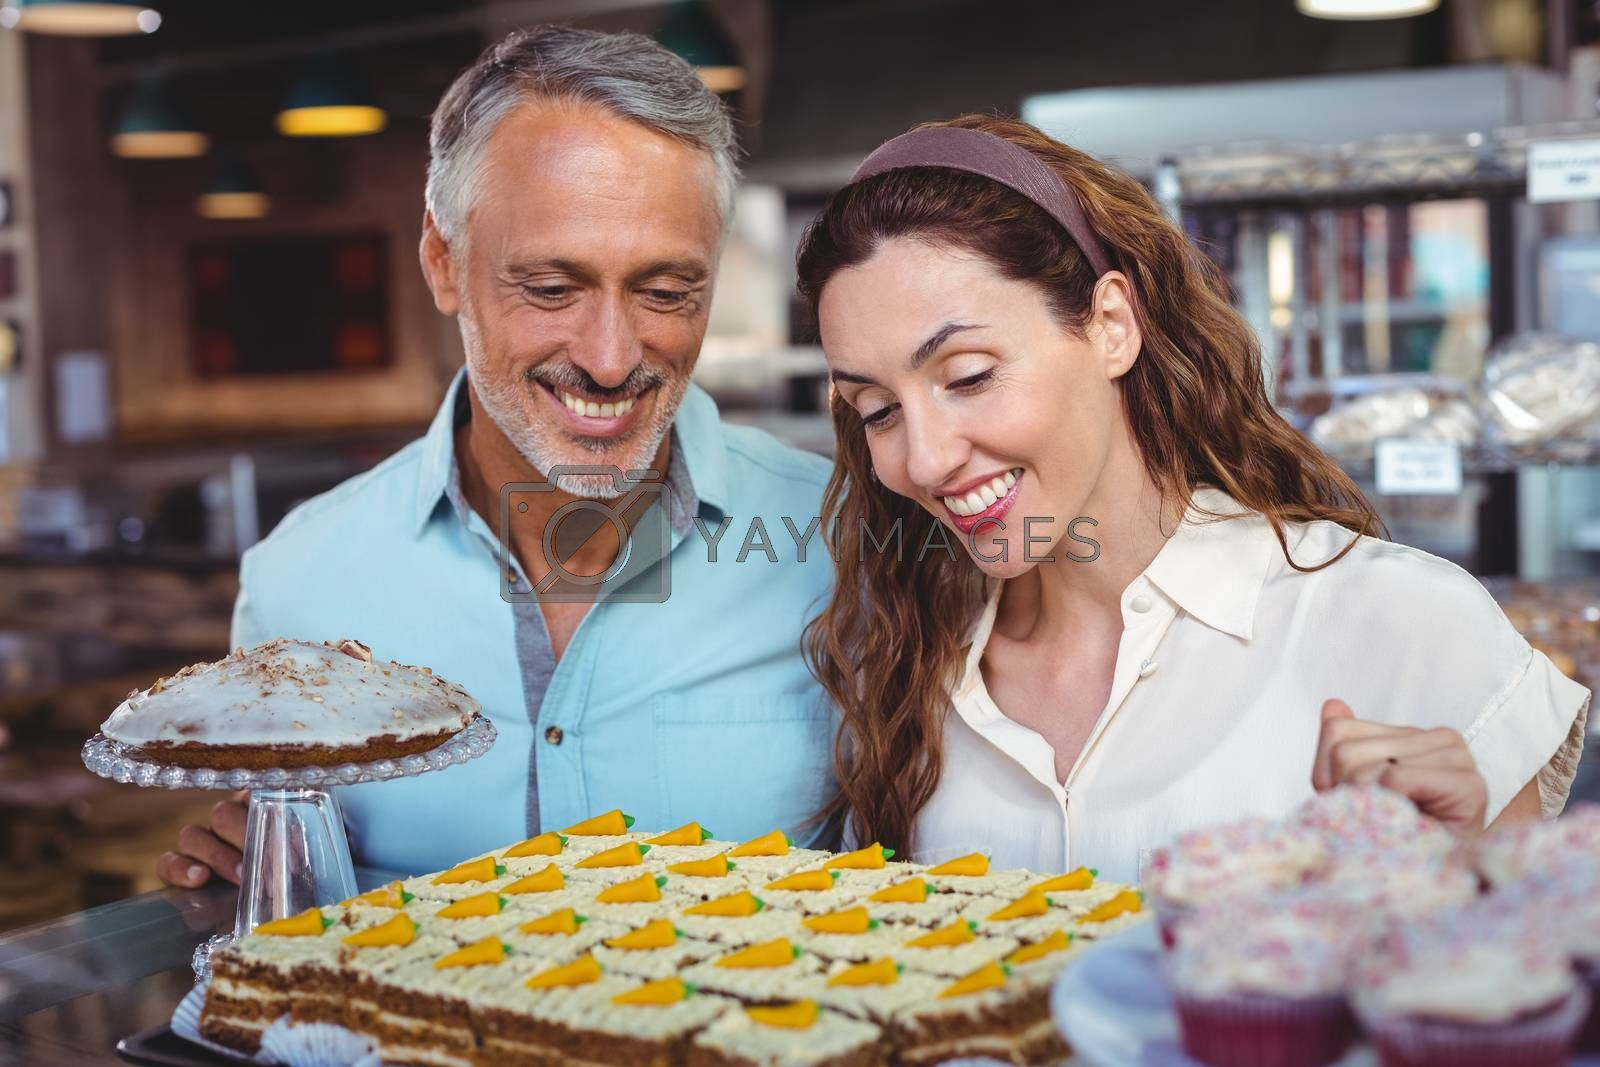 Royalty free image of Cute couple looking at pastries by Wavebreakmedia